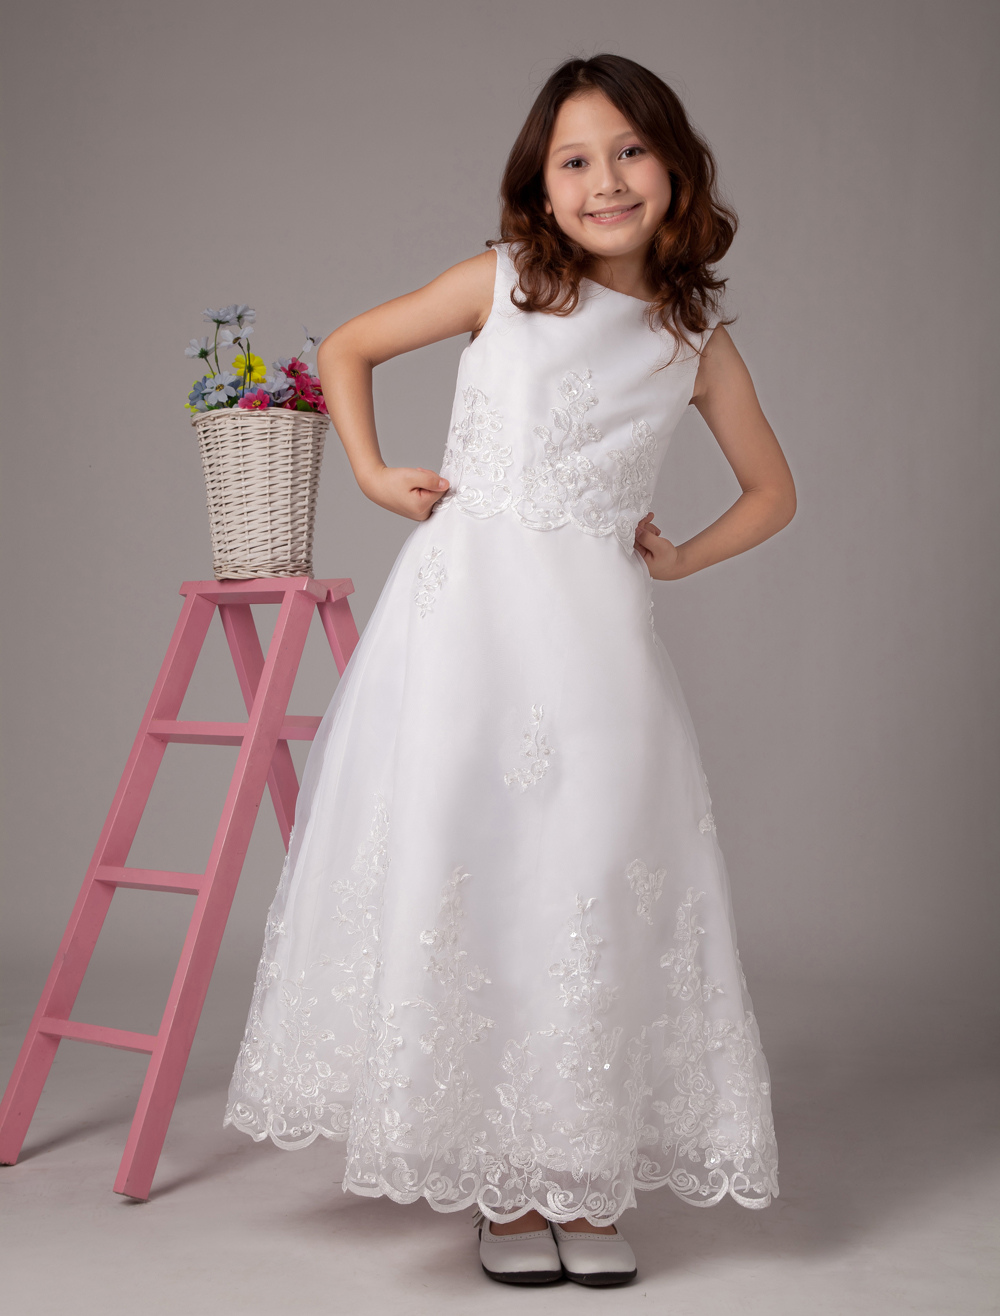 White Jewel Neck A-line Satin Cute Flower Girl Dress